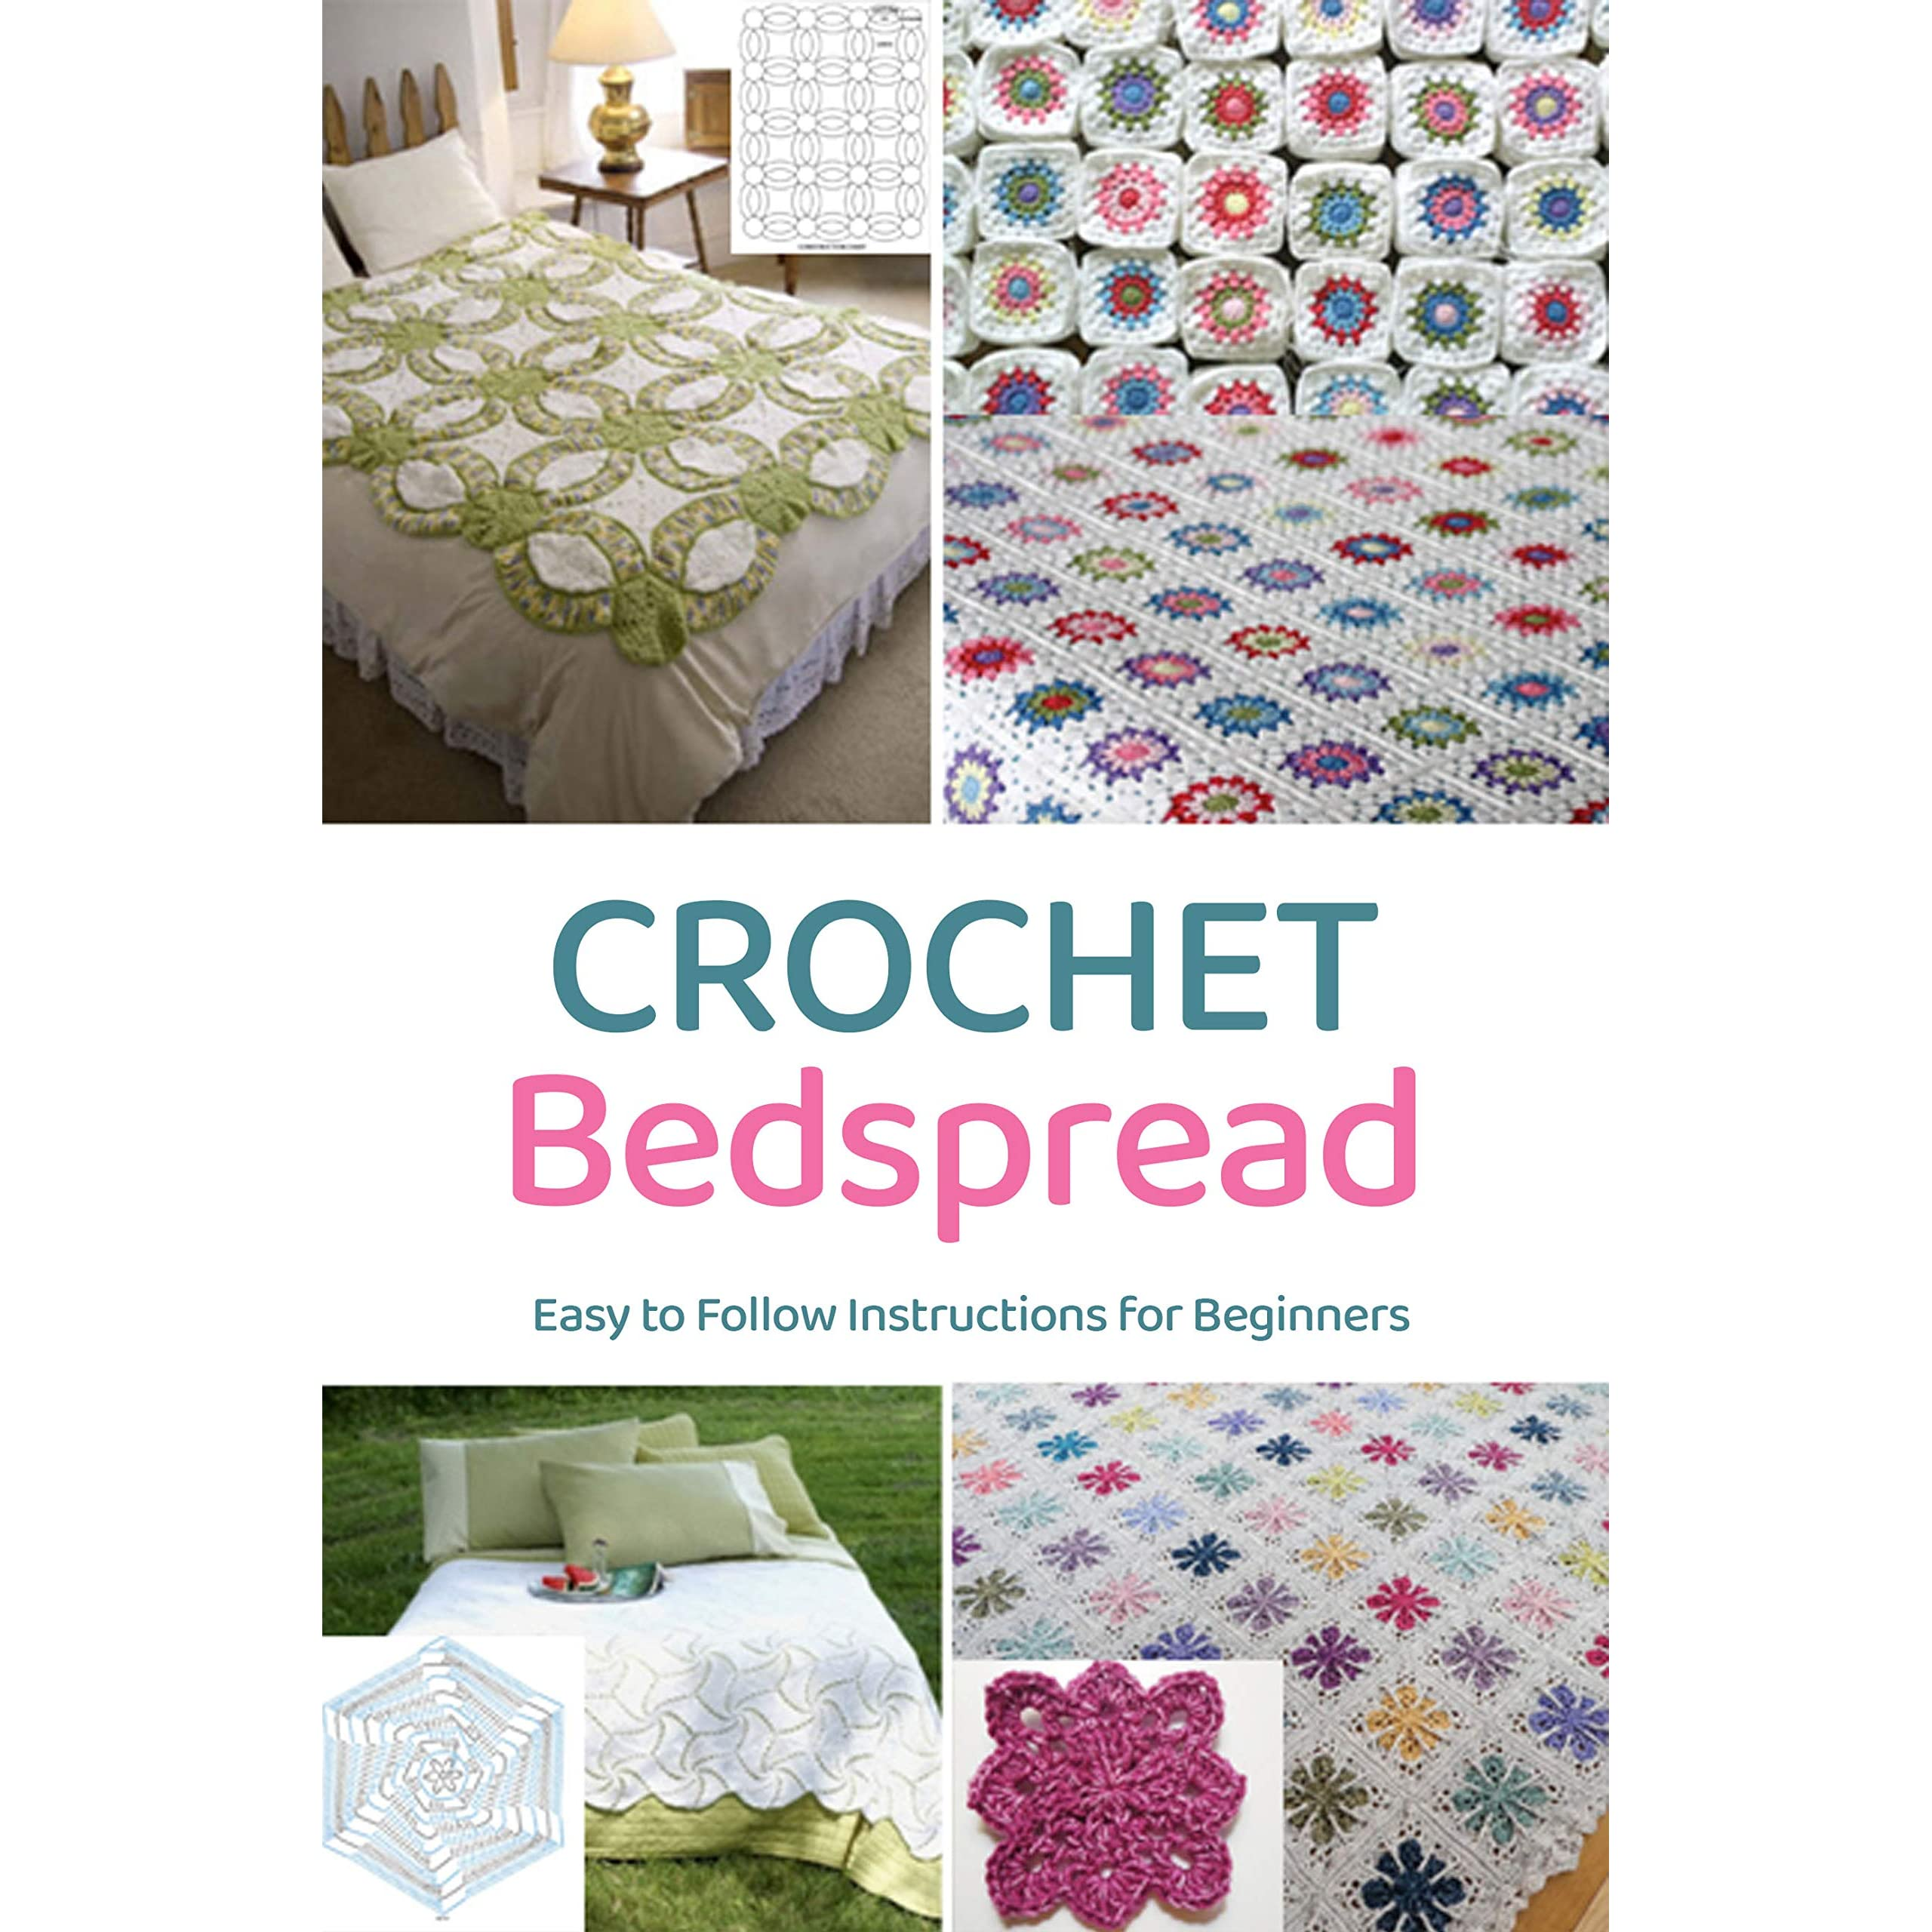 Crochet Bedspread Easy To Follow Instructions For Beginners Gift For Holiday By Jeremy Lockhart